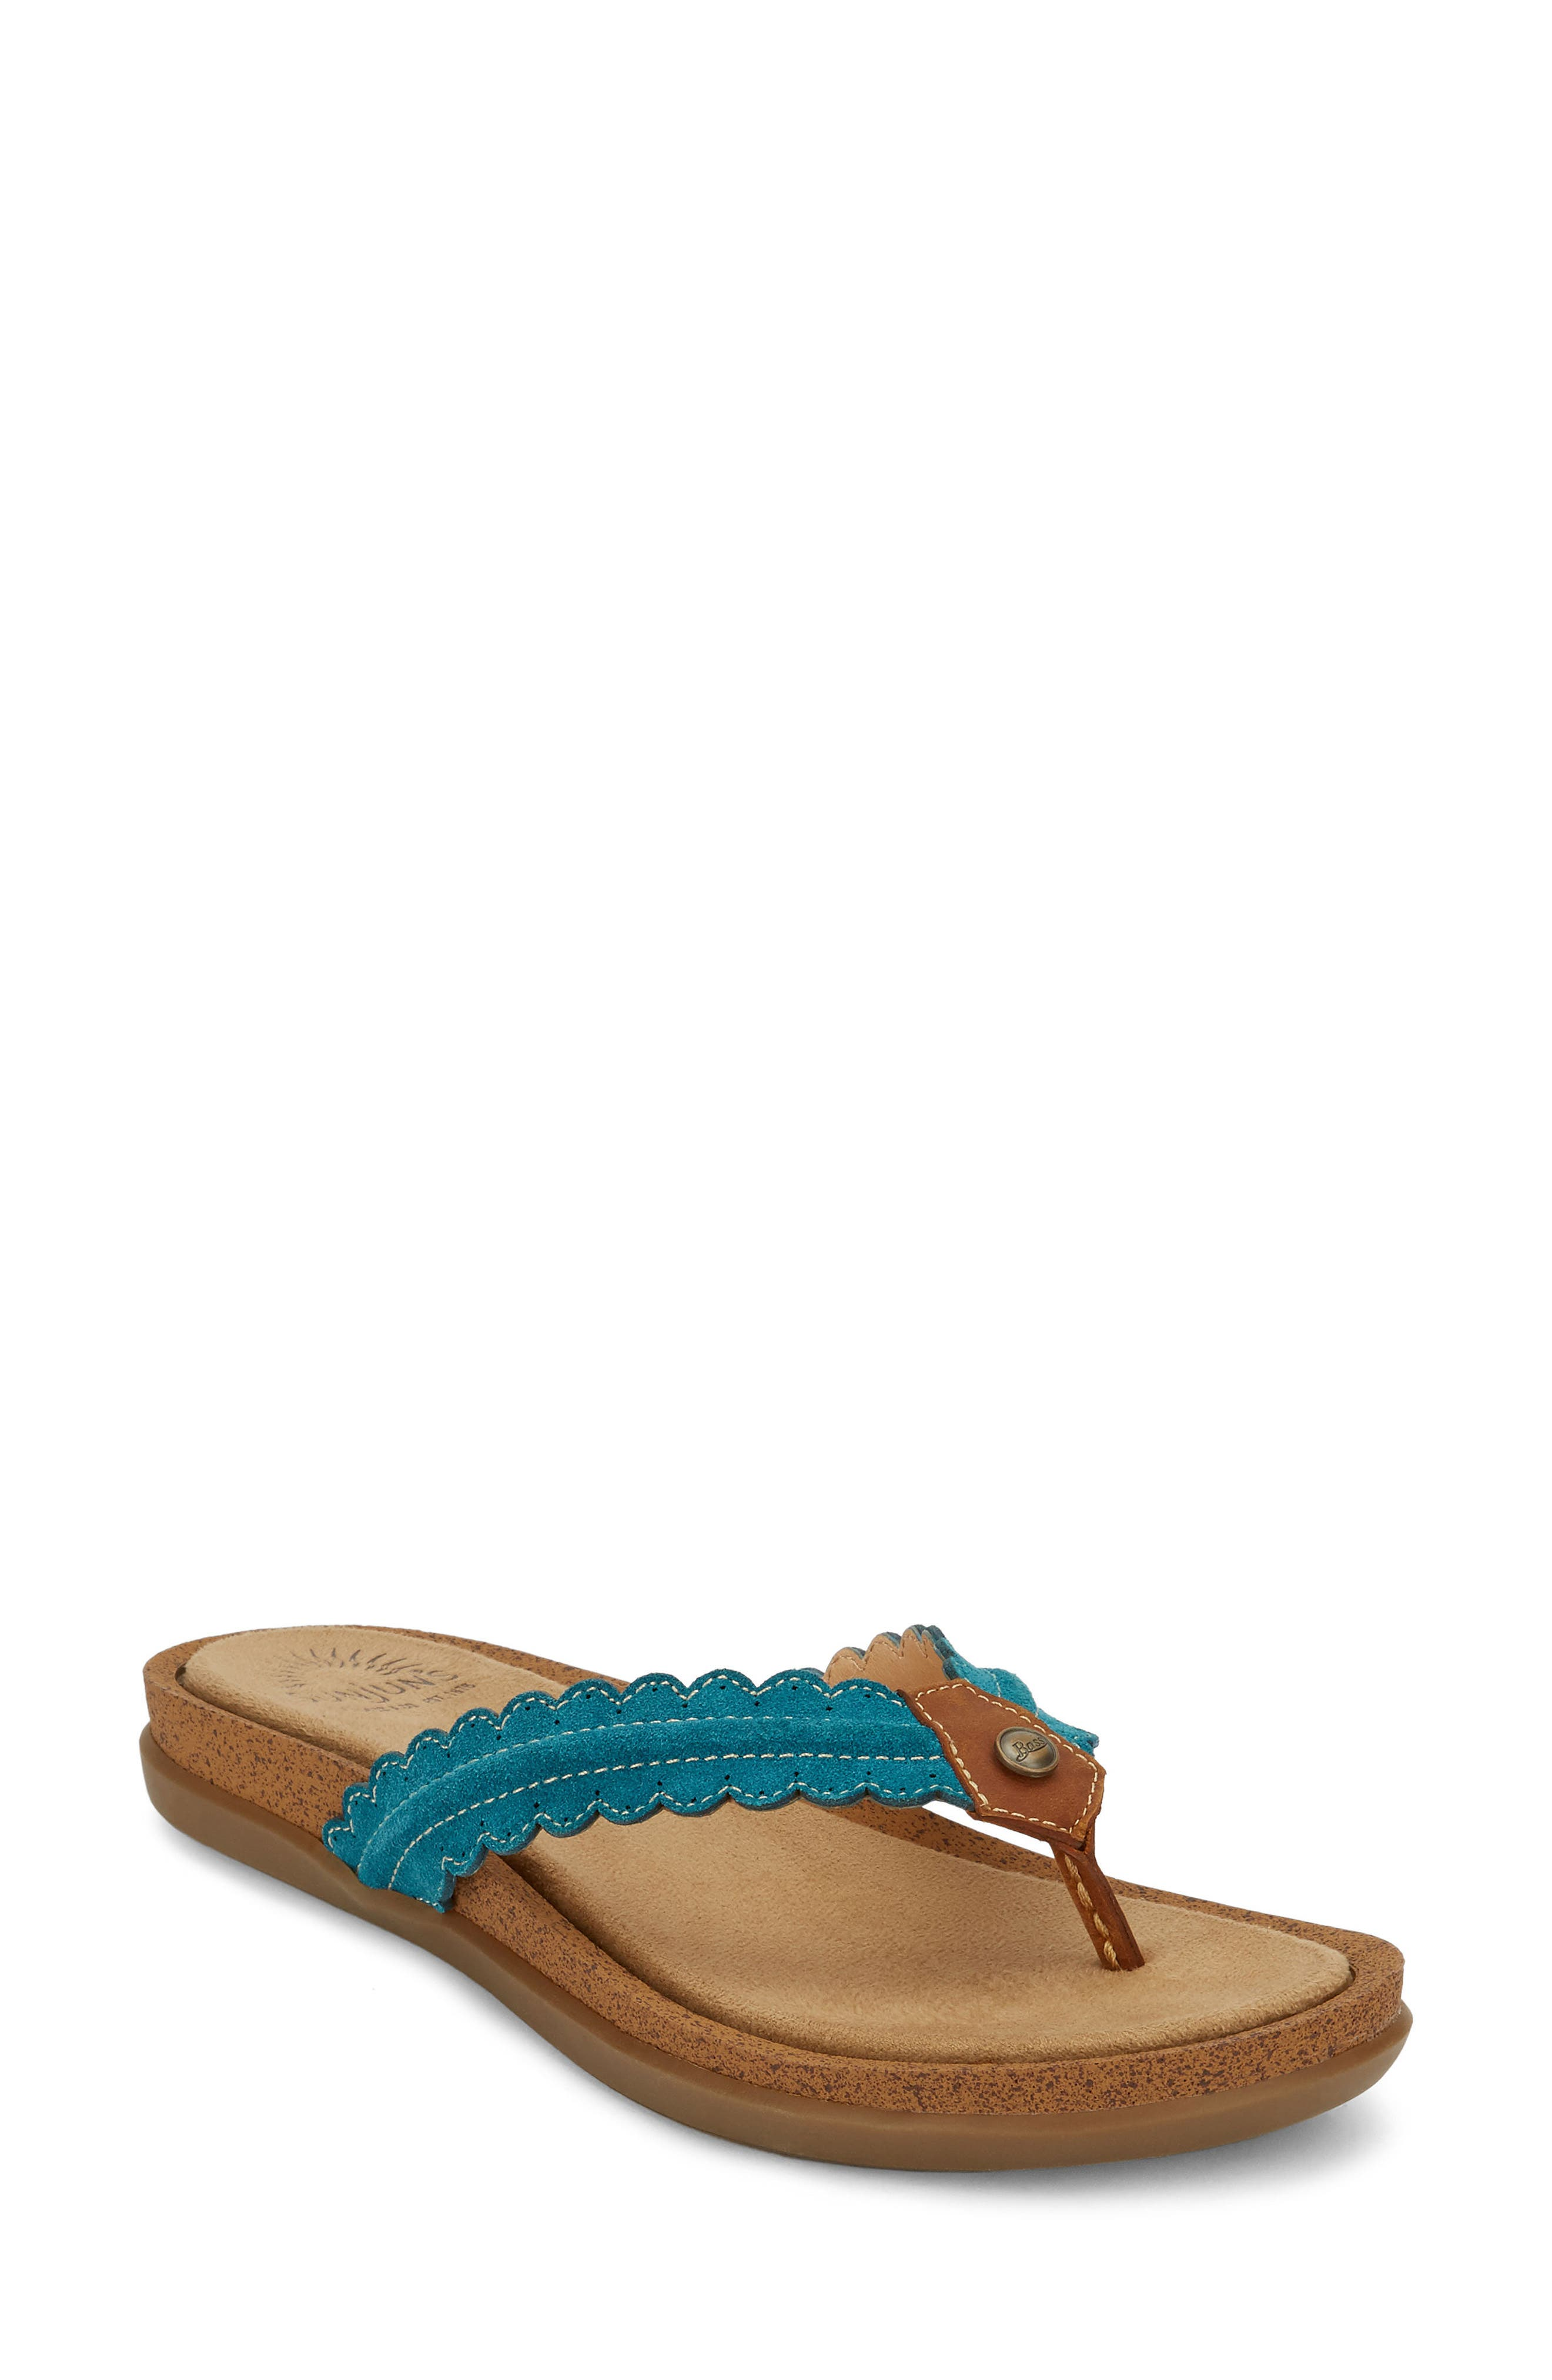 G.H. Bass and Co. Samantha Thong Sandal,                             Main thumbnail 4, color,